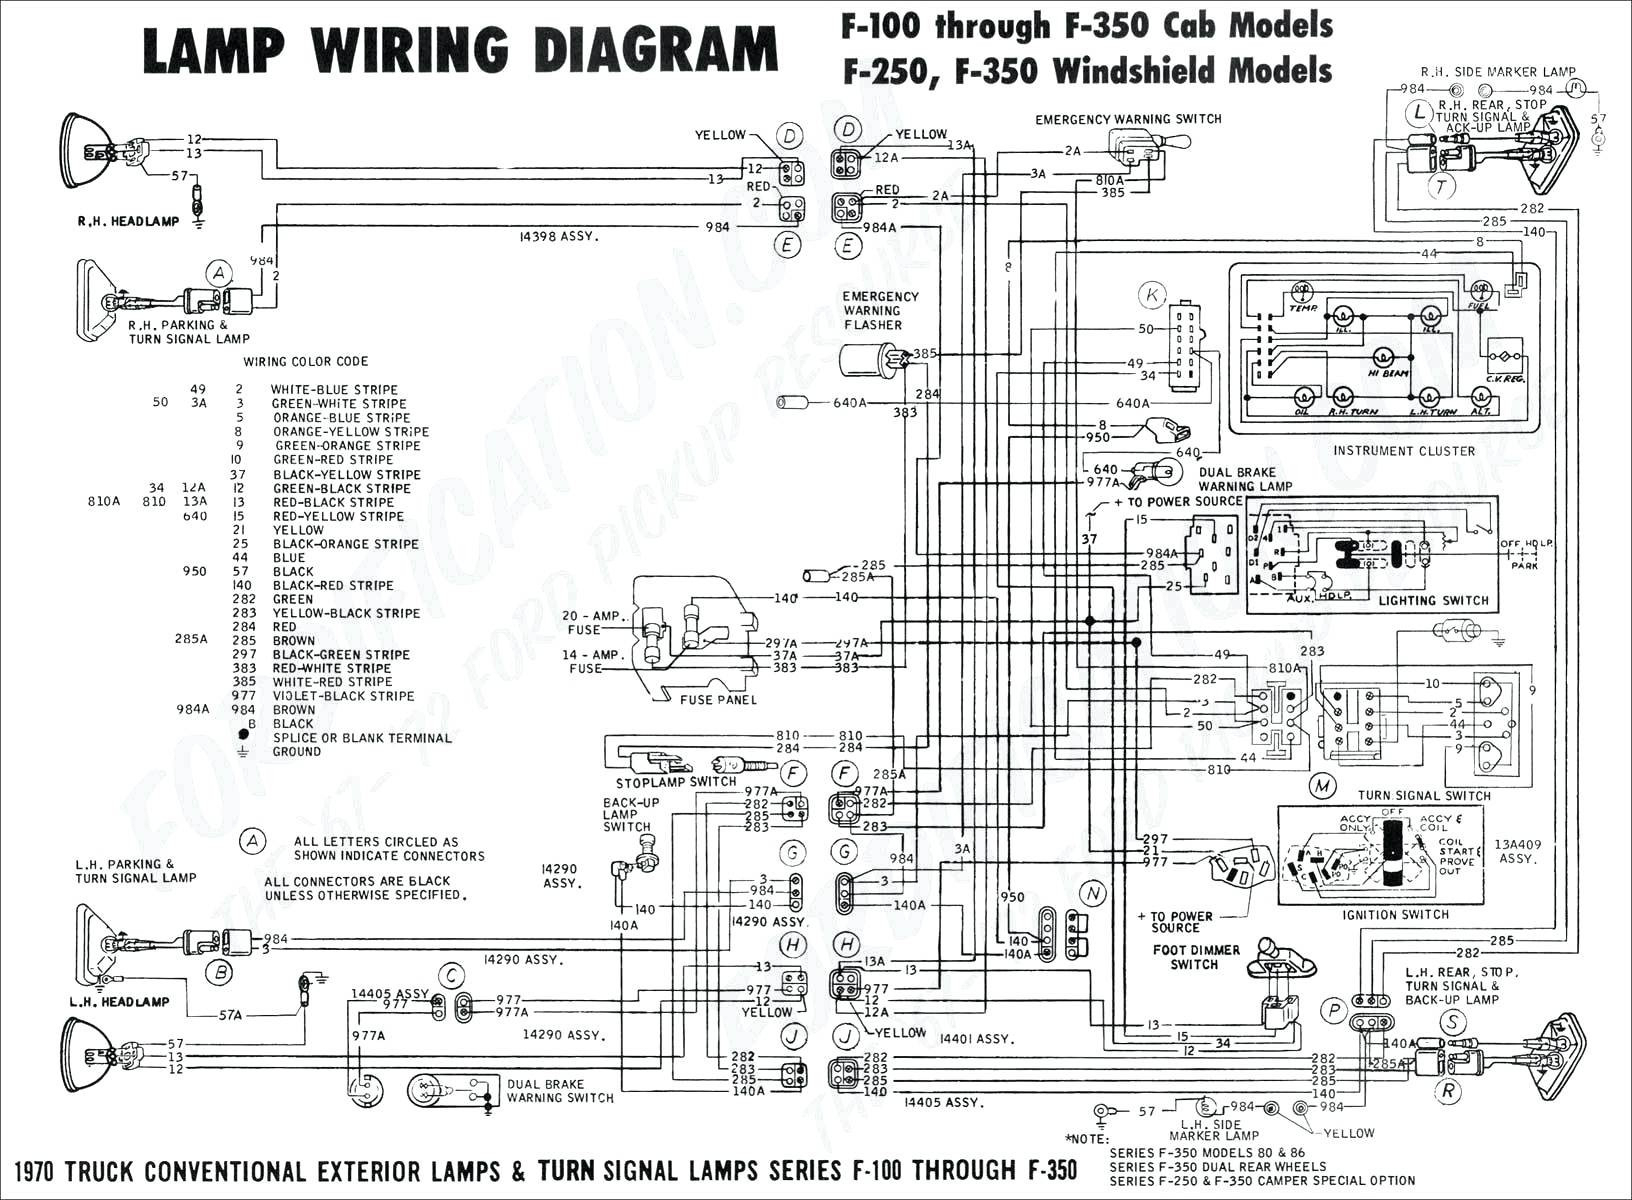 97 F350 Wiring Diagram - Wiring Diagram 500  Ford F Trailer Wiring Diagram on 97 chevy s10 wiring diagram, 97 chevy silverado wiring diagram, 97 buick riviera wiring diagram, 97 mercury sable wiring diagram, 97 dodge caravan wiring diagram, 97 dodge 2500 wiring diagram, 97 isuzu npr wiring diagram, 97 cadillac deville wiring diagram, 97 gmc sierra wiring diagram, 97 gmc sonoma wiring diagram, 97 dodge ram wiring diagram, 97 jeep wrangler wiring diagram, 97 acura tl wiring diagram, 97 toyota tacoma wiring diagram, 97 subaru impreza wiring diagram, 97 dodge dakota wiring diagram, 97 nissan sentra wiring diagram, 97 nissan pathfinder wiring diagram, 97 jeep cherokee wiring diagram, 97 honda prelude wiring diagram,